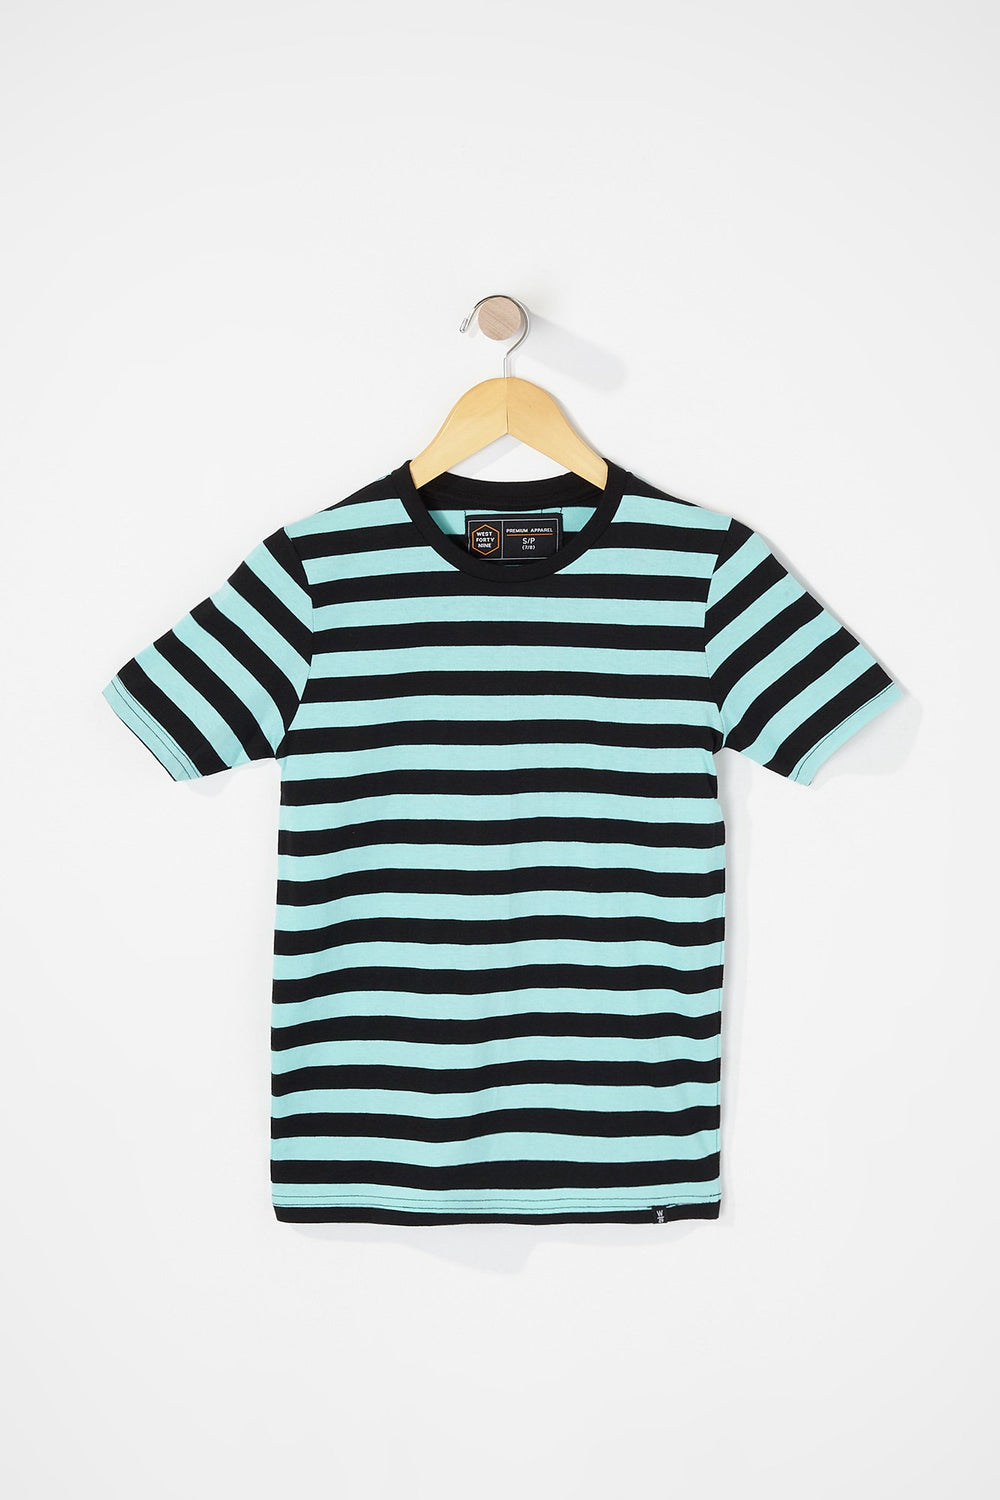 West49 Boys Striped T-Shirt Turquoise